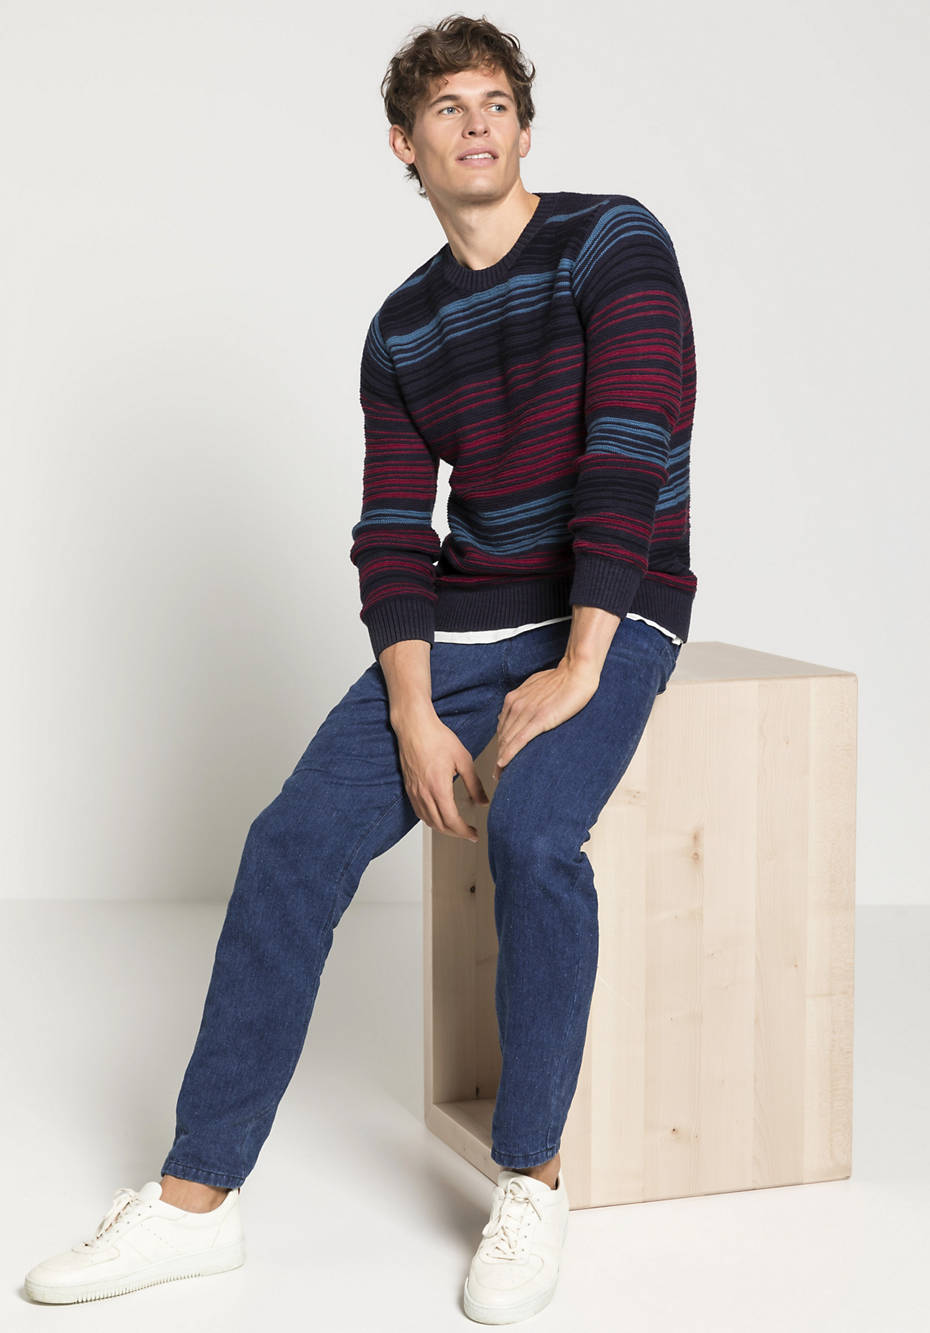 Stripe sweater made of organic cotton with a blend of virgin wool and linen